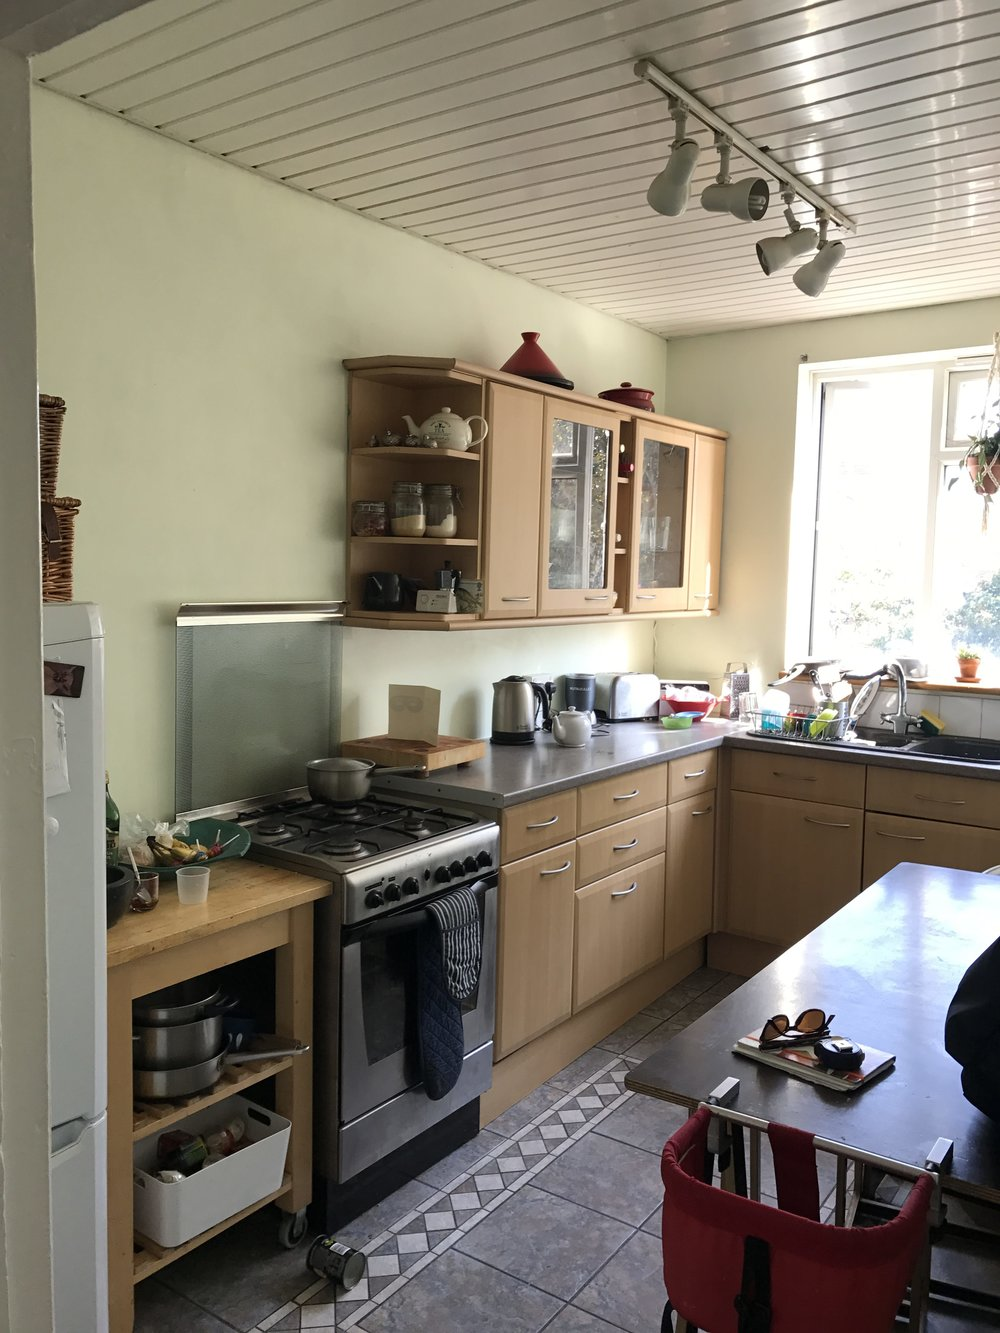 Sarah's Kitchen before Lozi's renovations